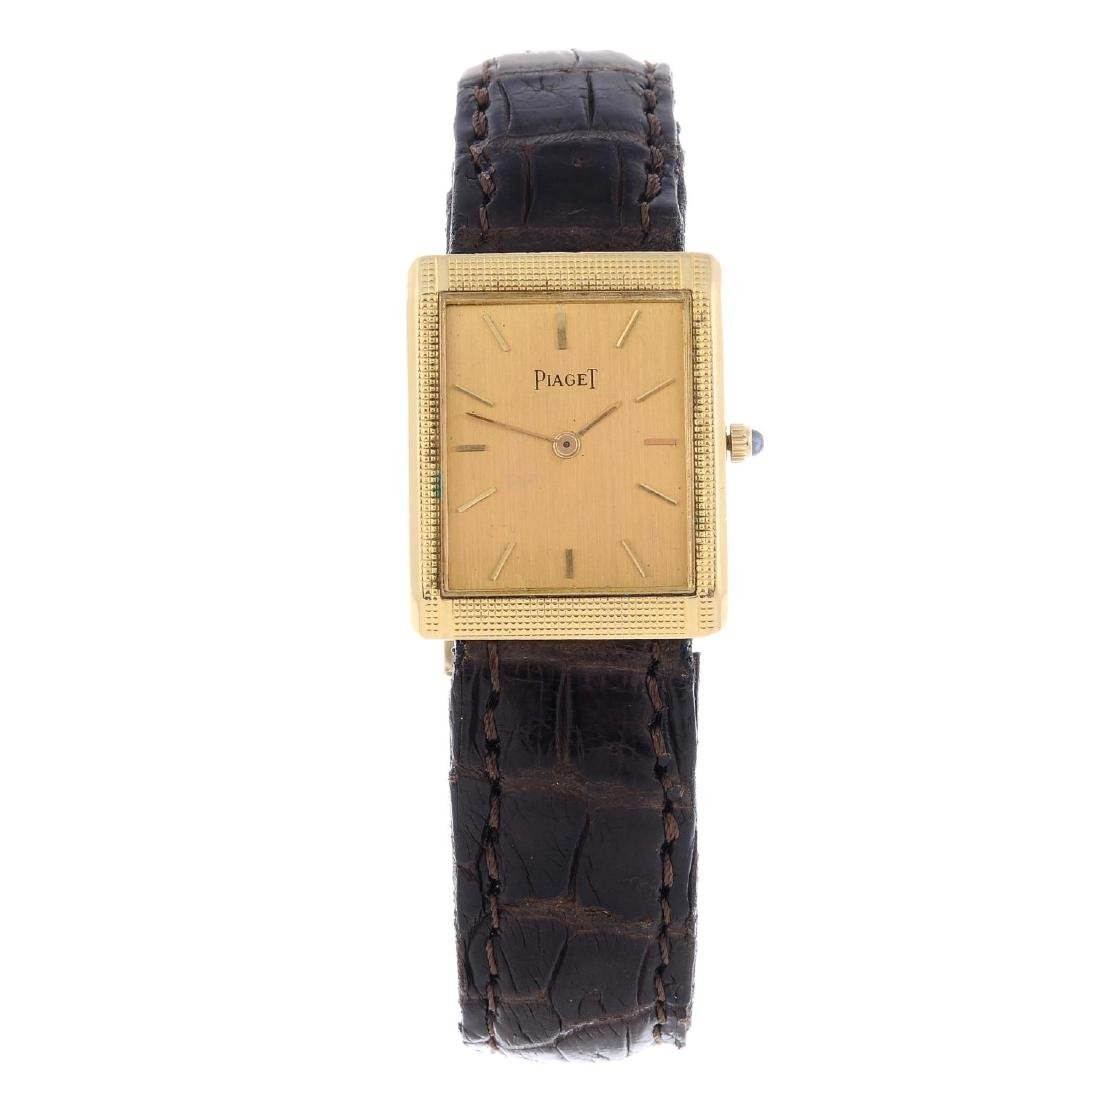 PIAGET - a mid-size wrist watch. Yellow metal case.